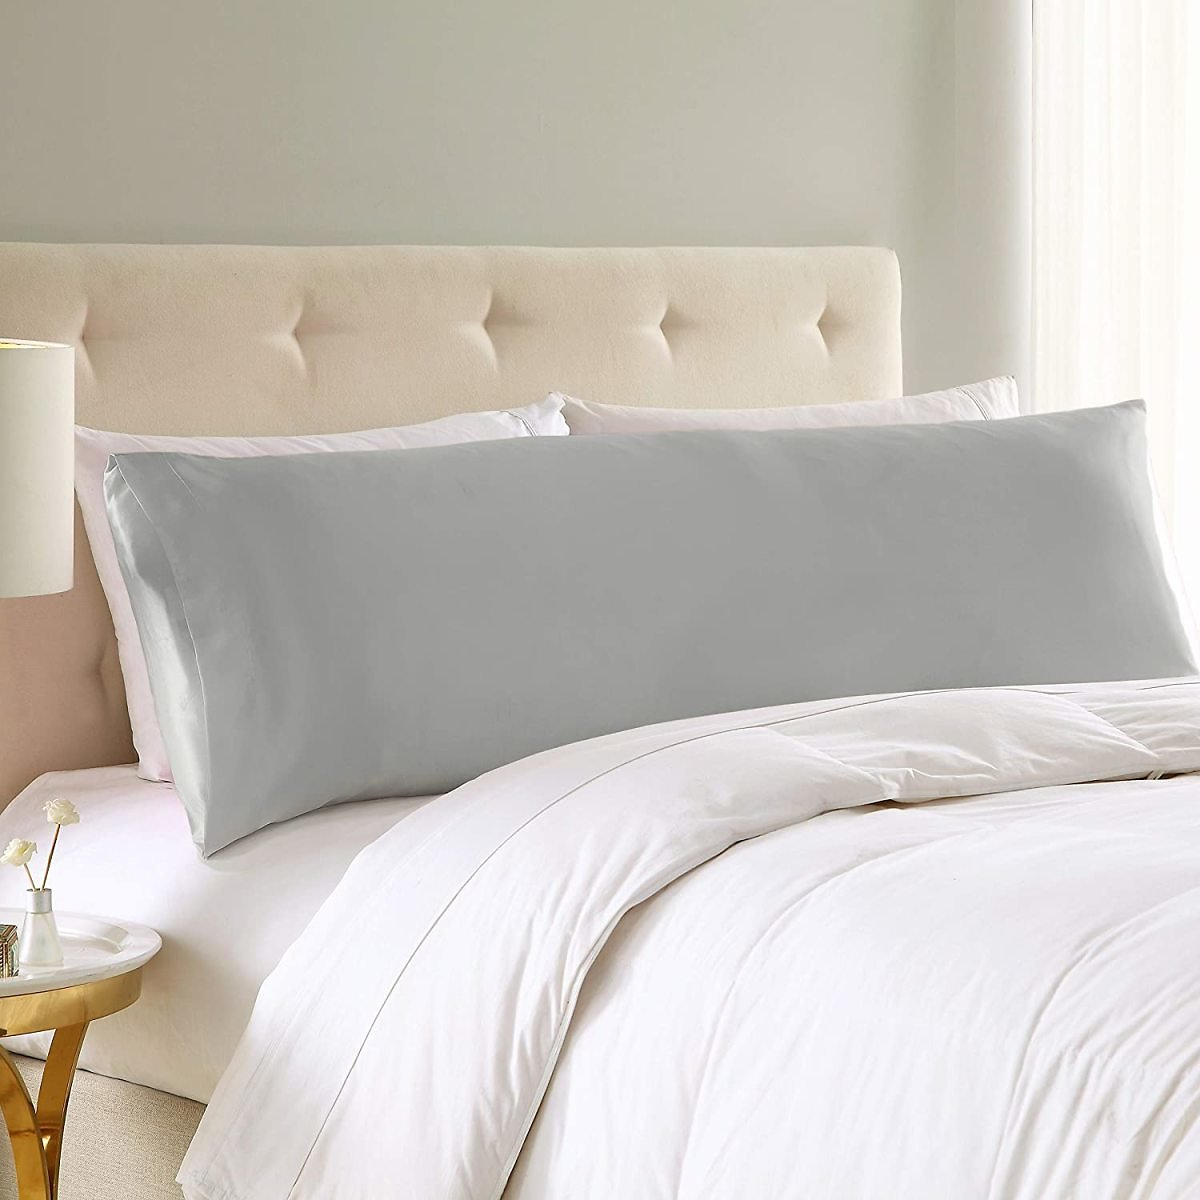 EXQ Home Body Pillow Cover Soft Silver Grey Satin Body Pillow Pillowcase with Envelope Closure Silky Long Pillow Case (20x54 Inches)